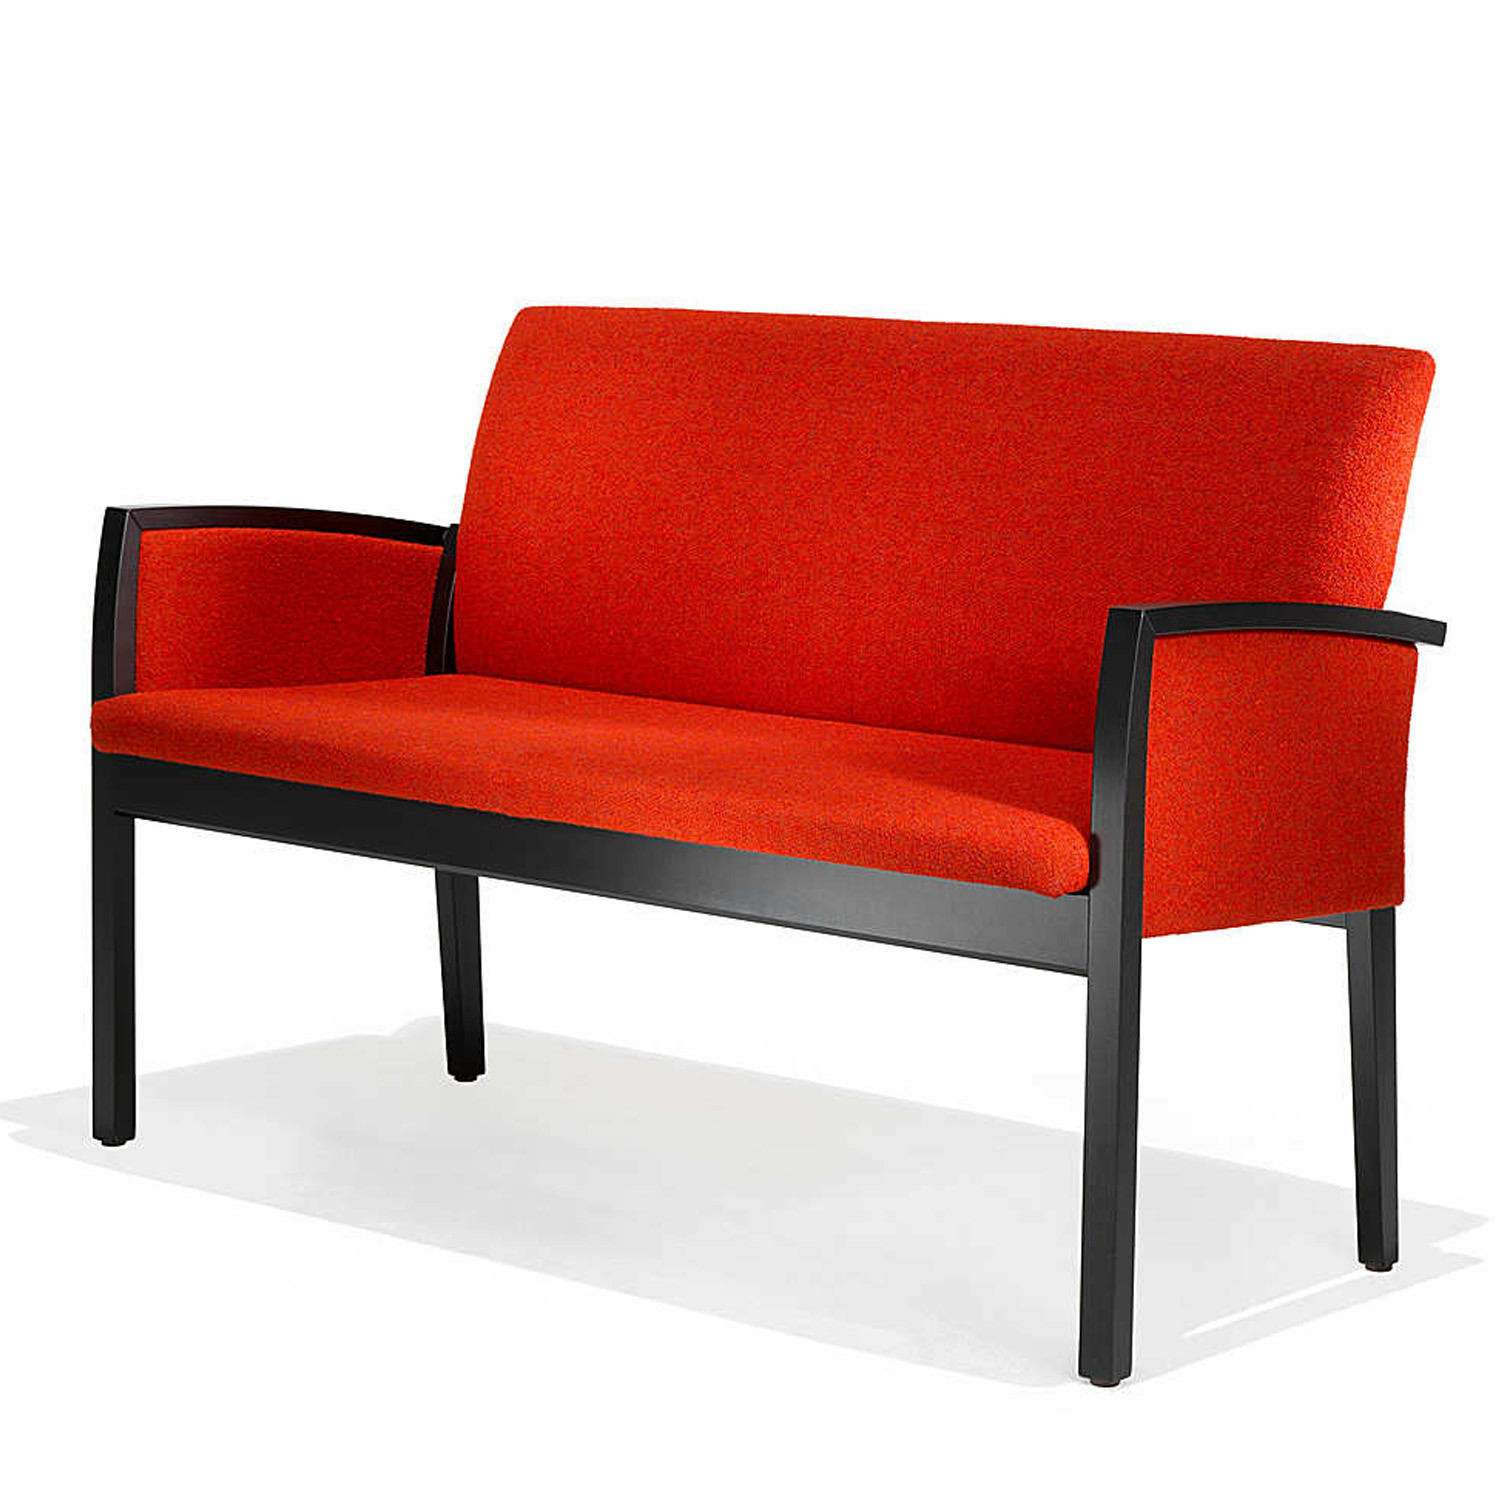 3700 Palato Upholstered Bench with backrest